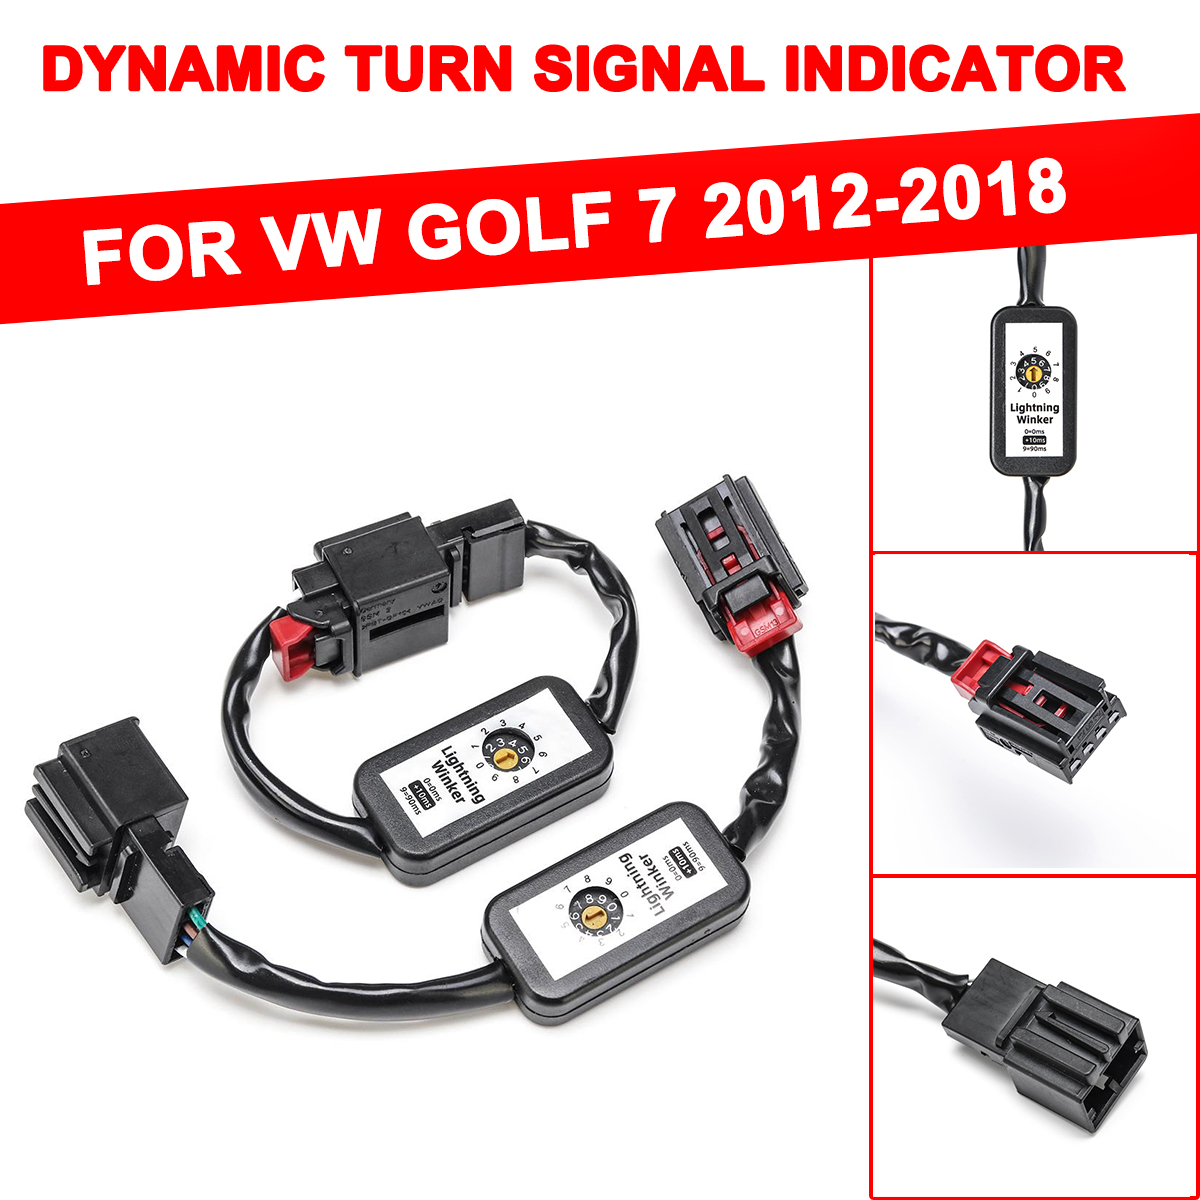 1Pair Dynamic Turn Signal Indicator <font><b>LED</b></font> Taillight Left&Right <font><b>Tail</b></font> <font><b>Light</b></font> Add-on Module Cable Wire Harnes For Volkswagen VW <font><b>Golf</b></font> 7 image